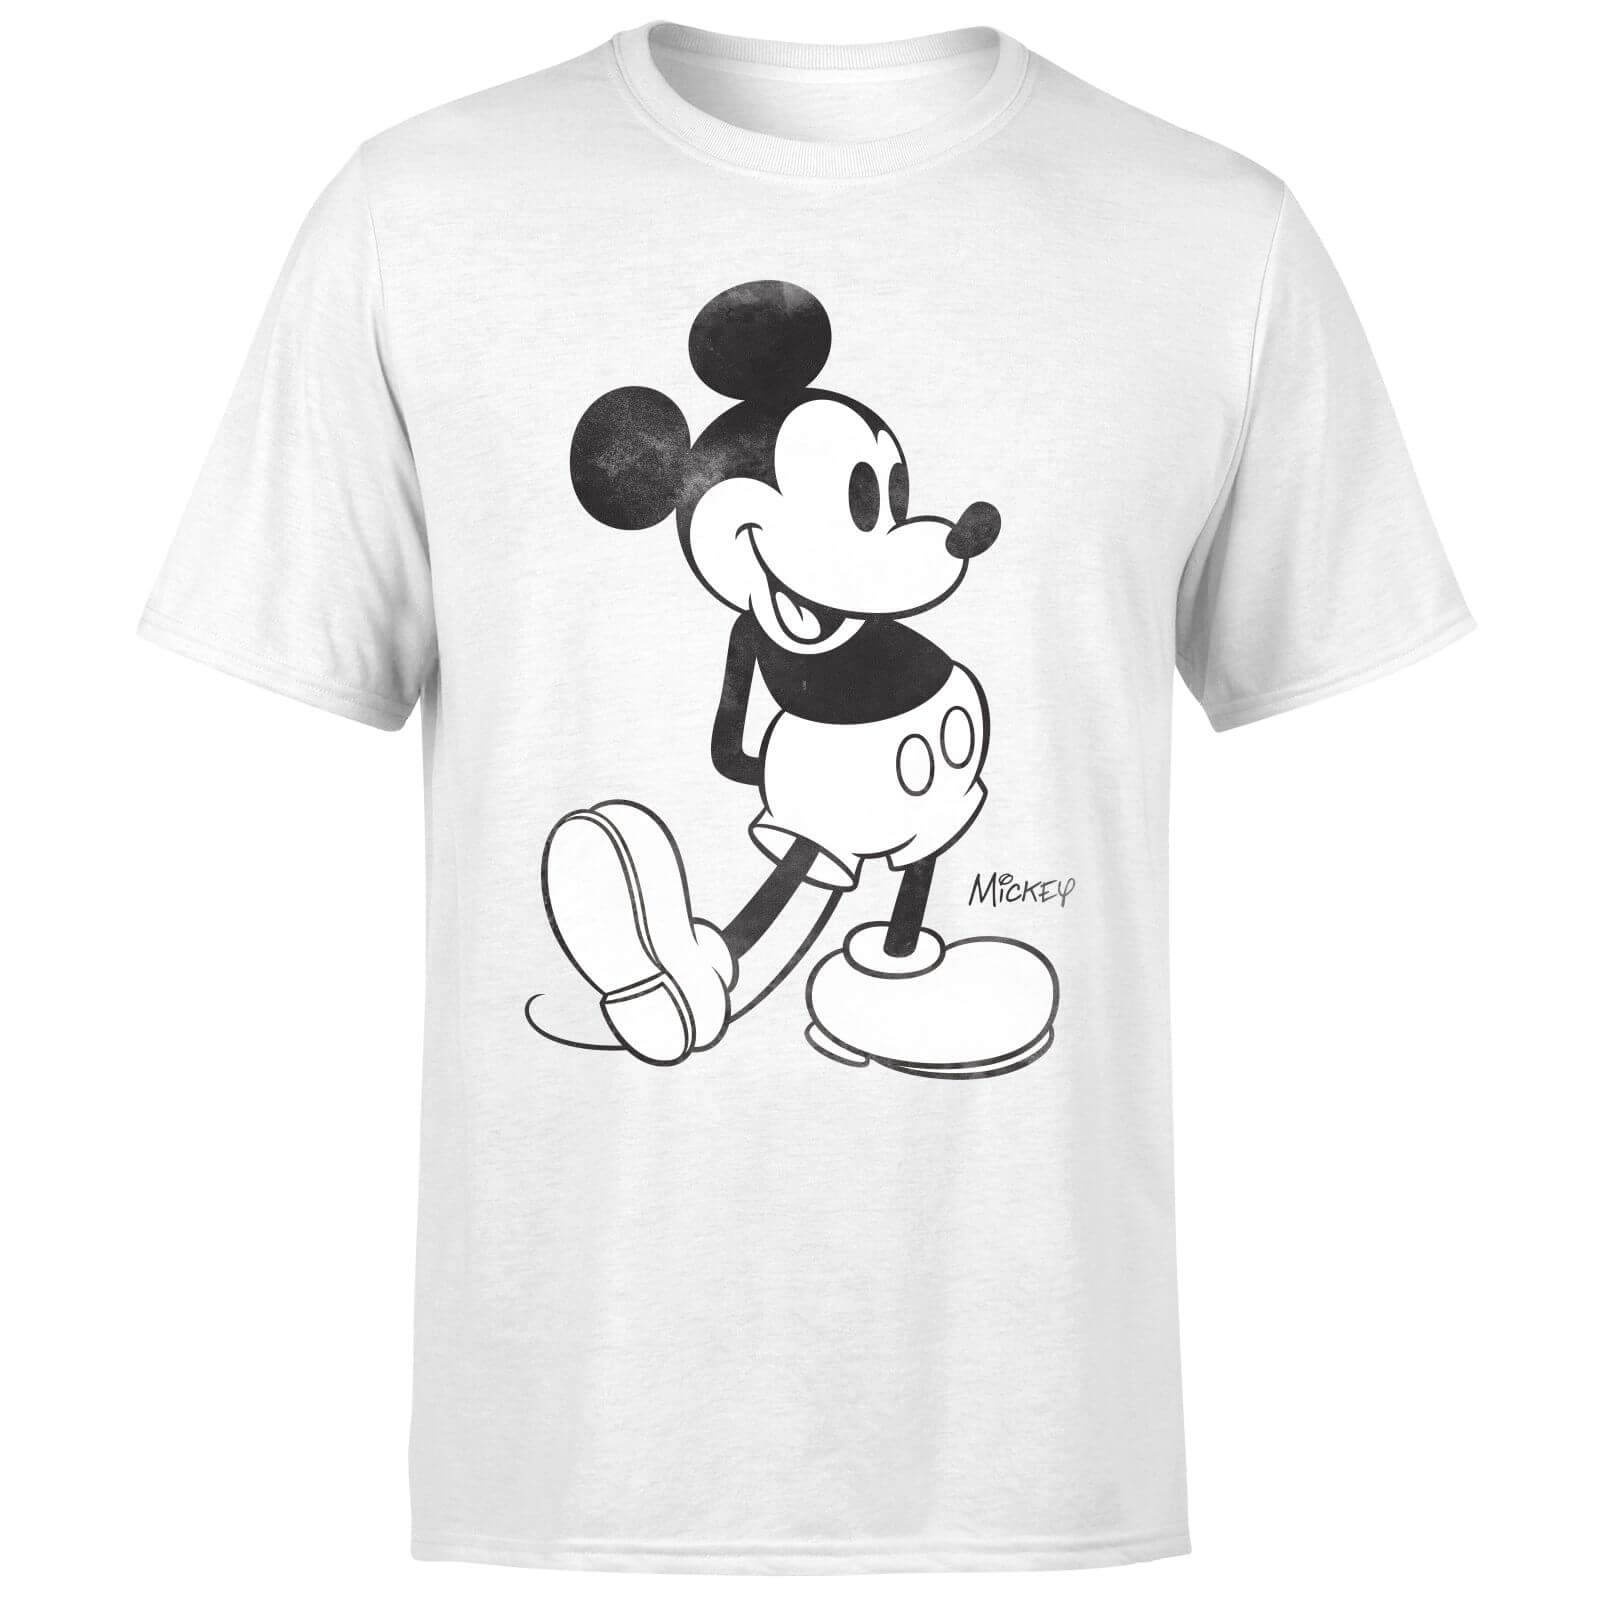 Disney Mickey Mouse Classic Kick B&W T-Shirt - White